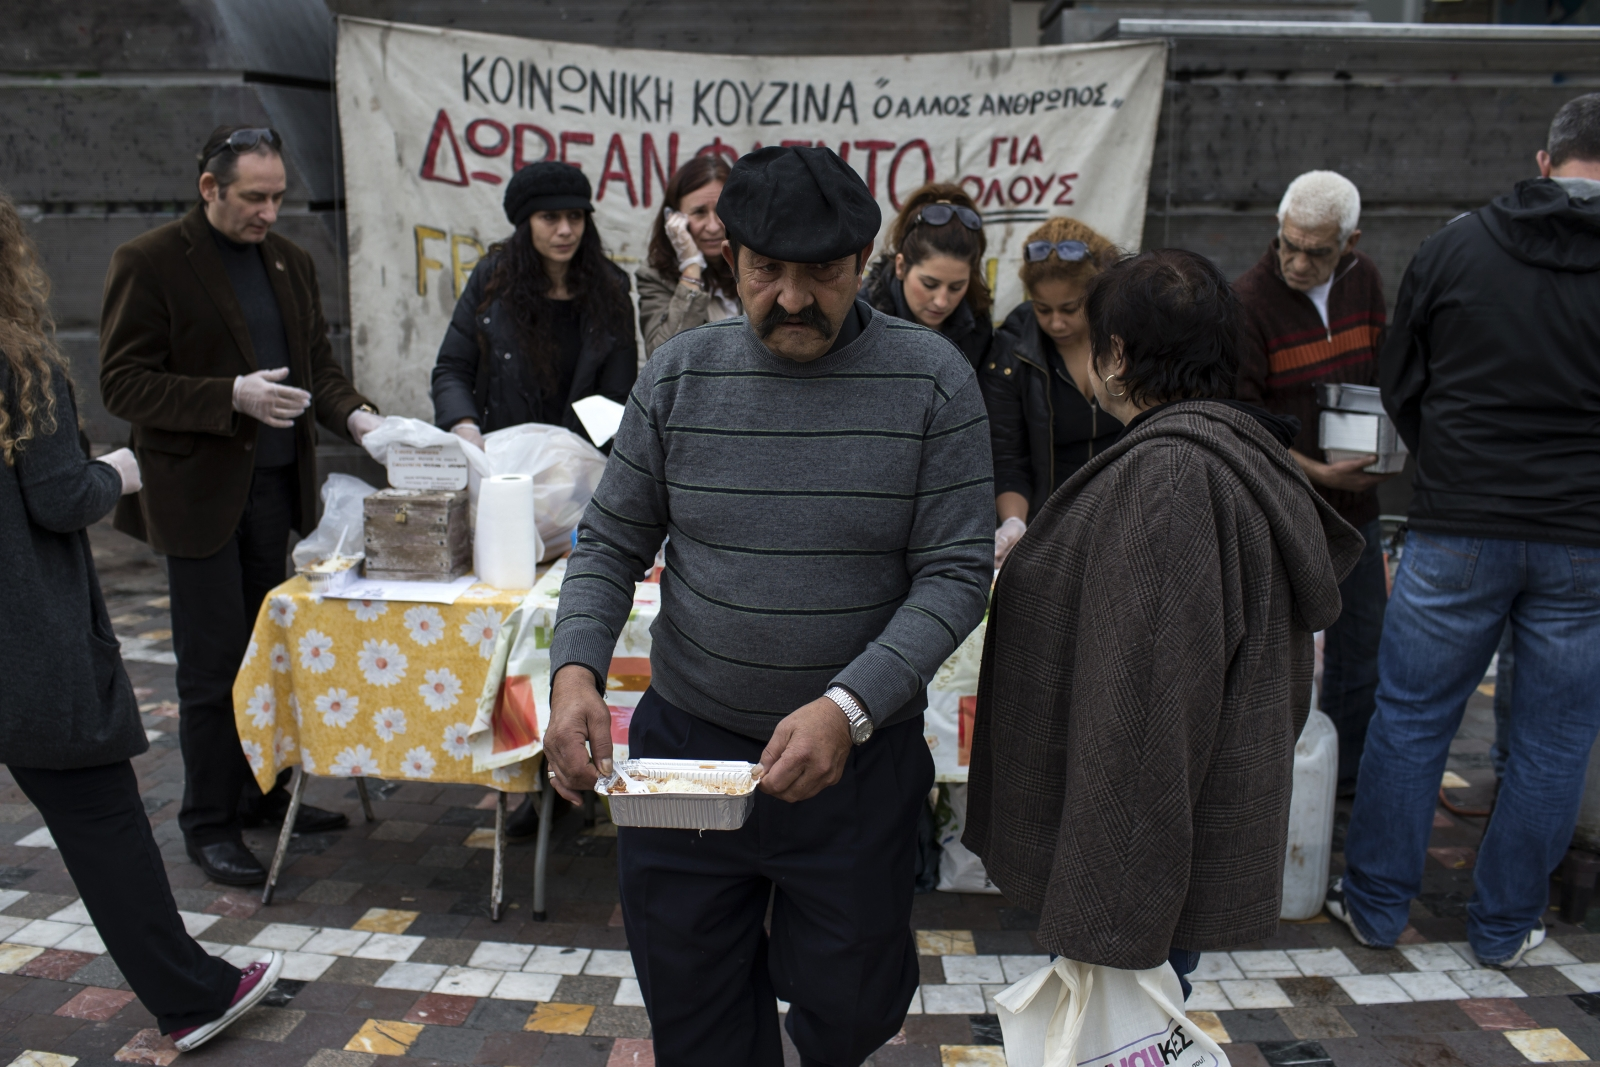 """A man receives a portion of food at a soup kitchen, organized during the years of the Greek economic crisis by """"The Fellow Man"""" group, in Athens January 20, 2015."""